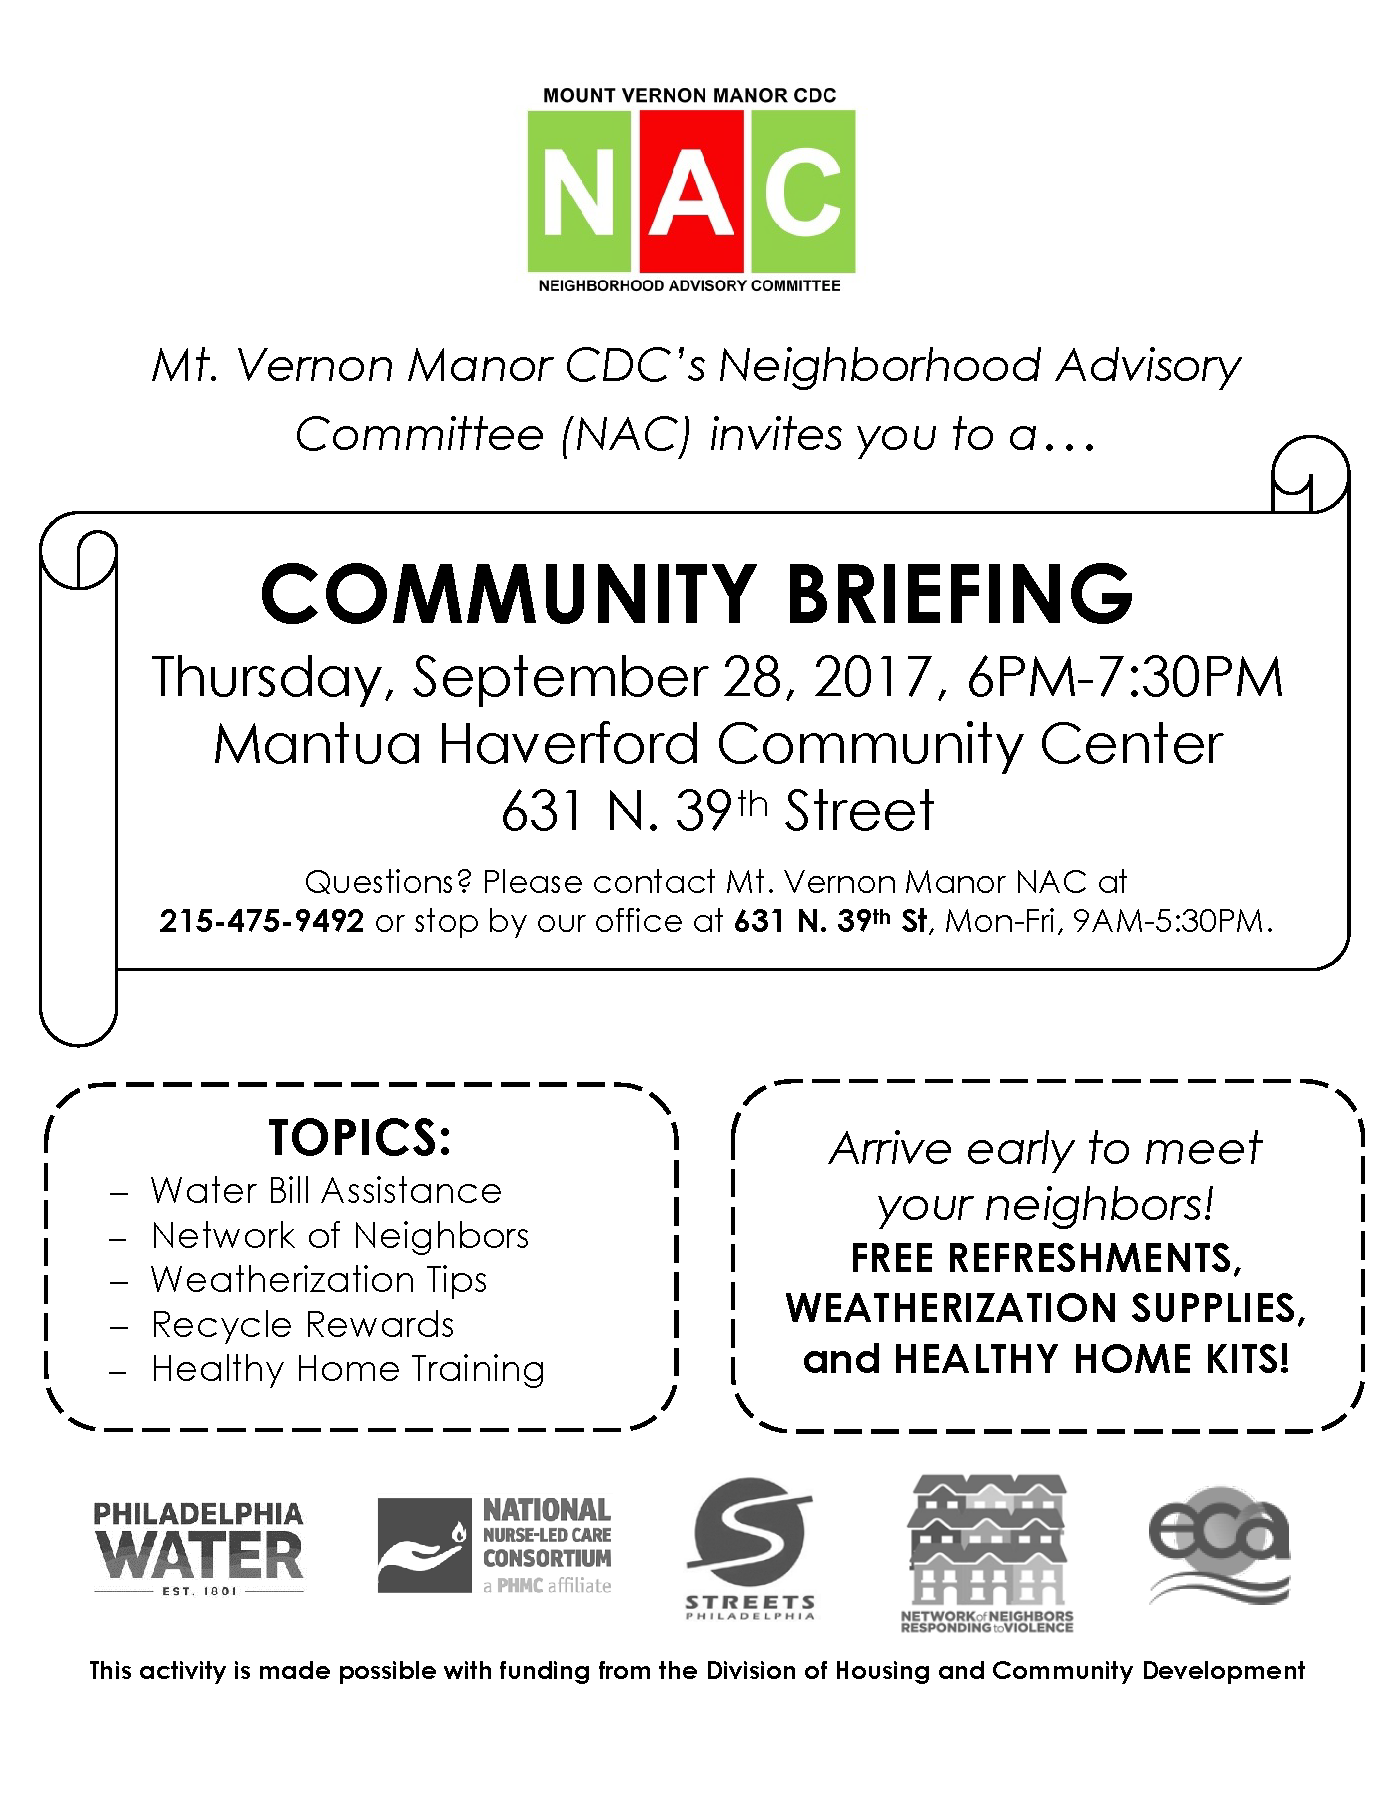 September 28 Community Briefing Flyer